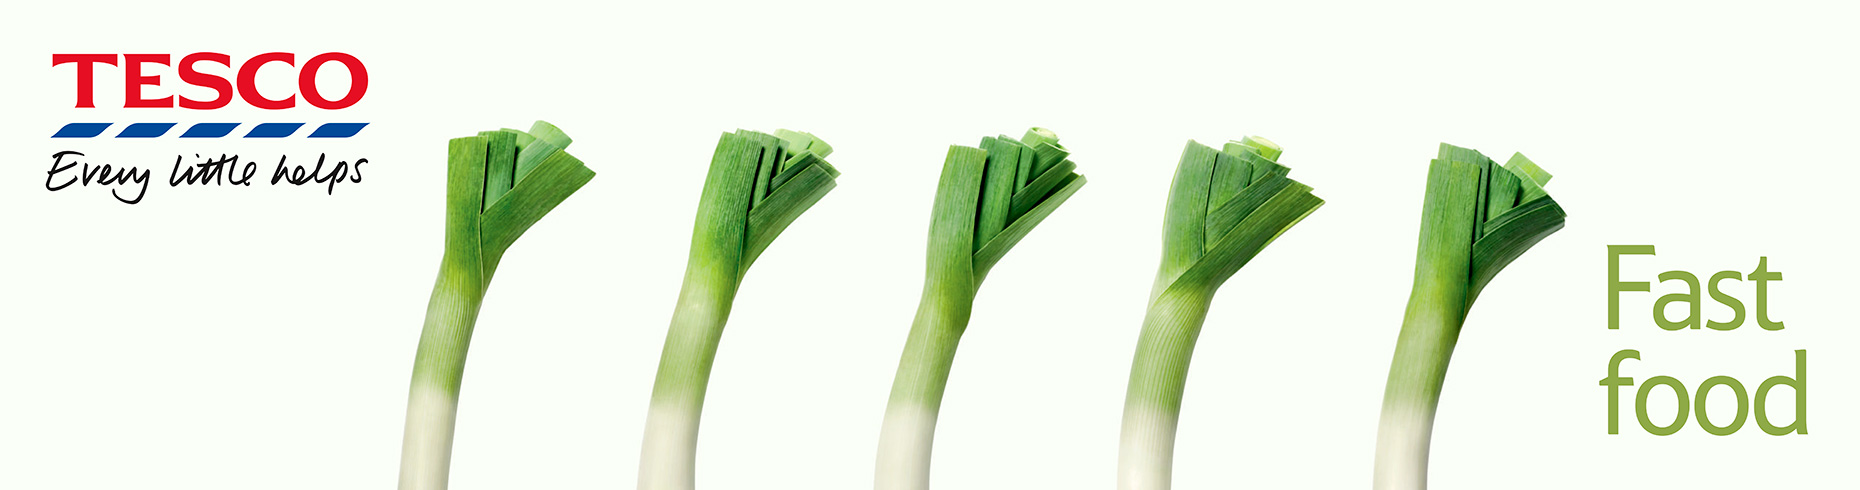 Tesco Leeks | Colin Campbell-Food Photographer